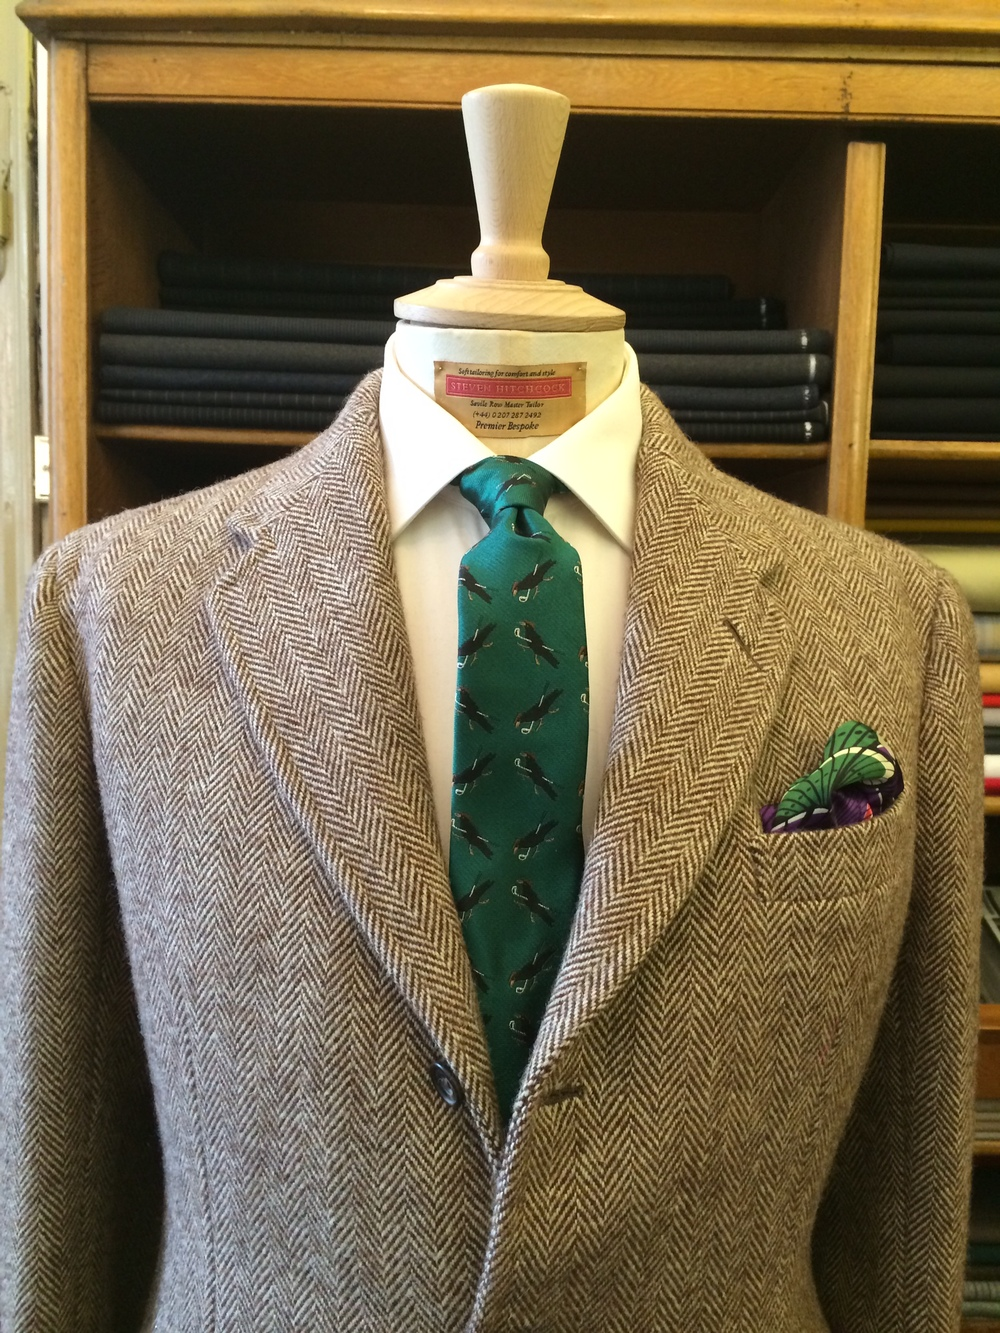 Steven Hitchcock Herringbone tweed bespoke jacket with the Ernest tie. Styling: Celia Williams